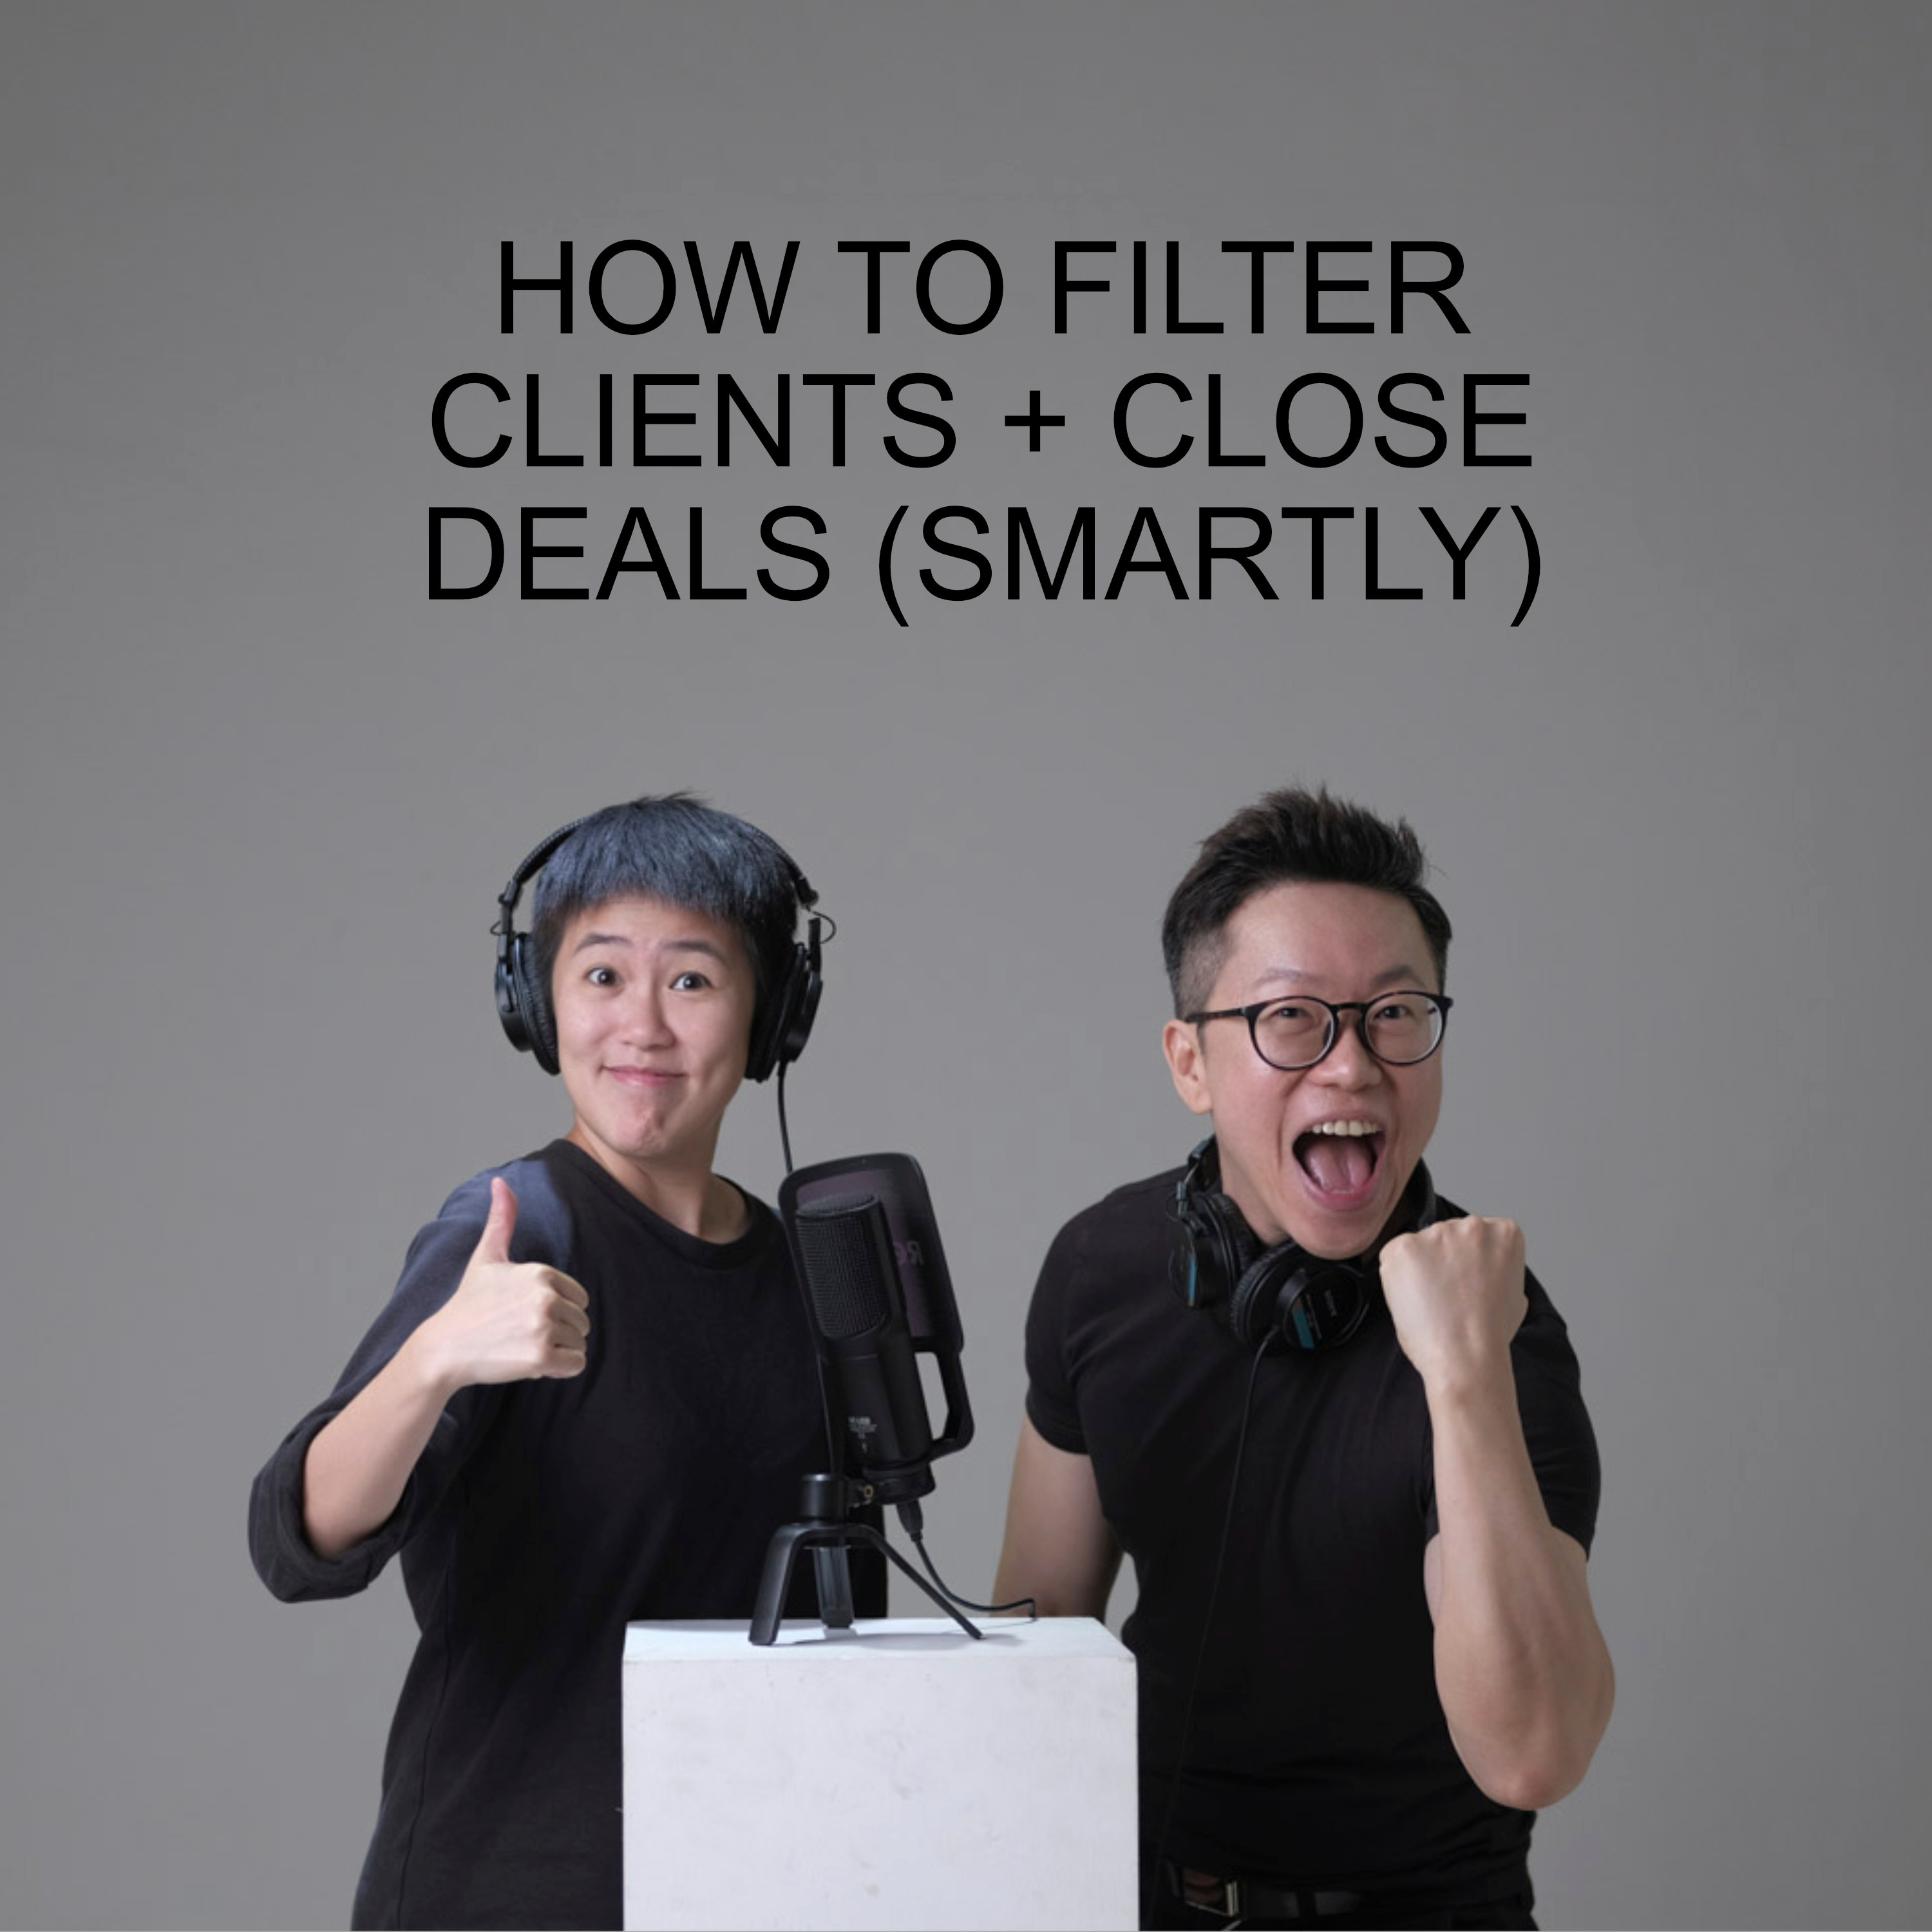 Ep #39 - How To Filter Clients + Close Deals (Smartly)